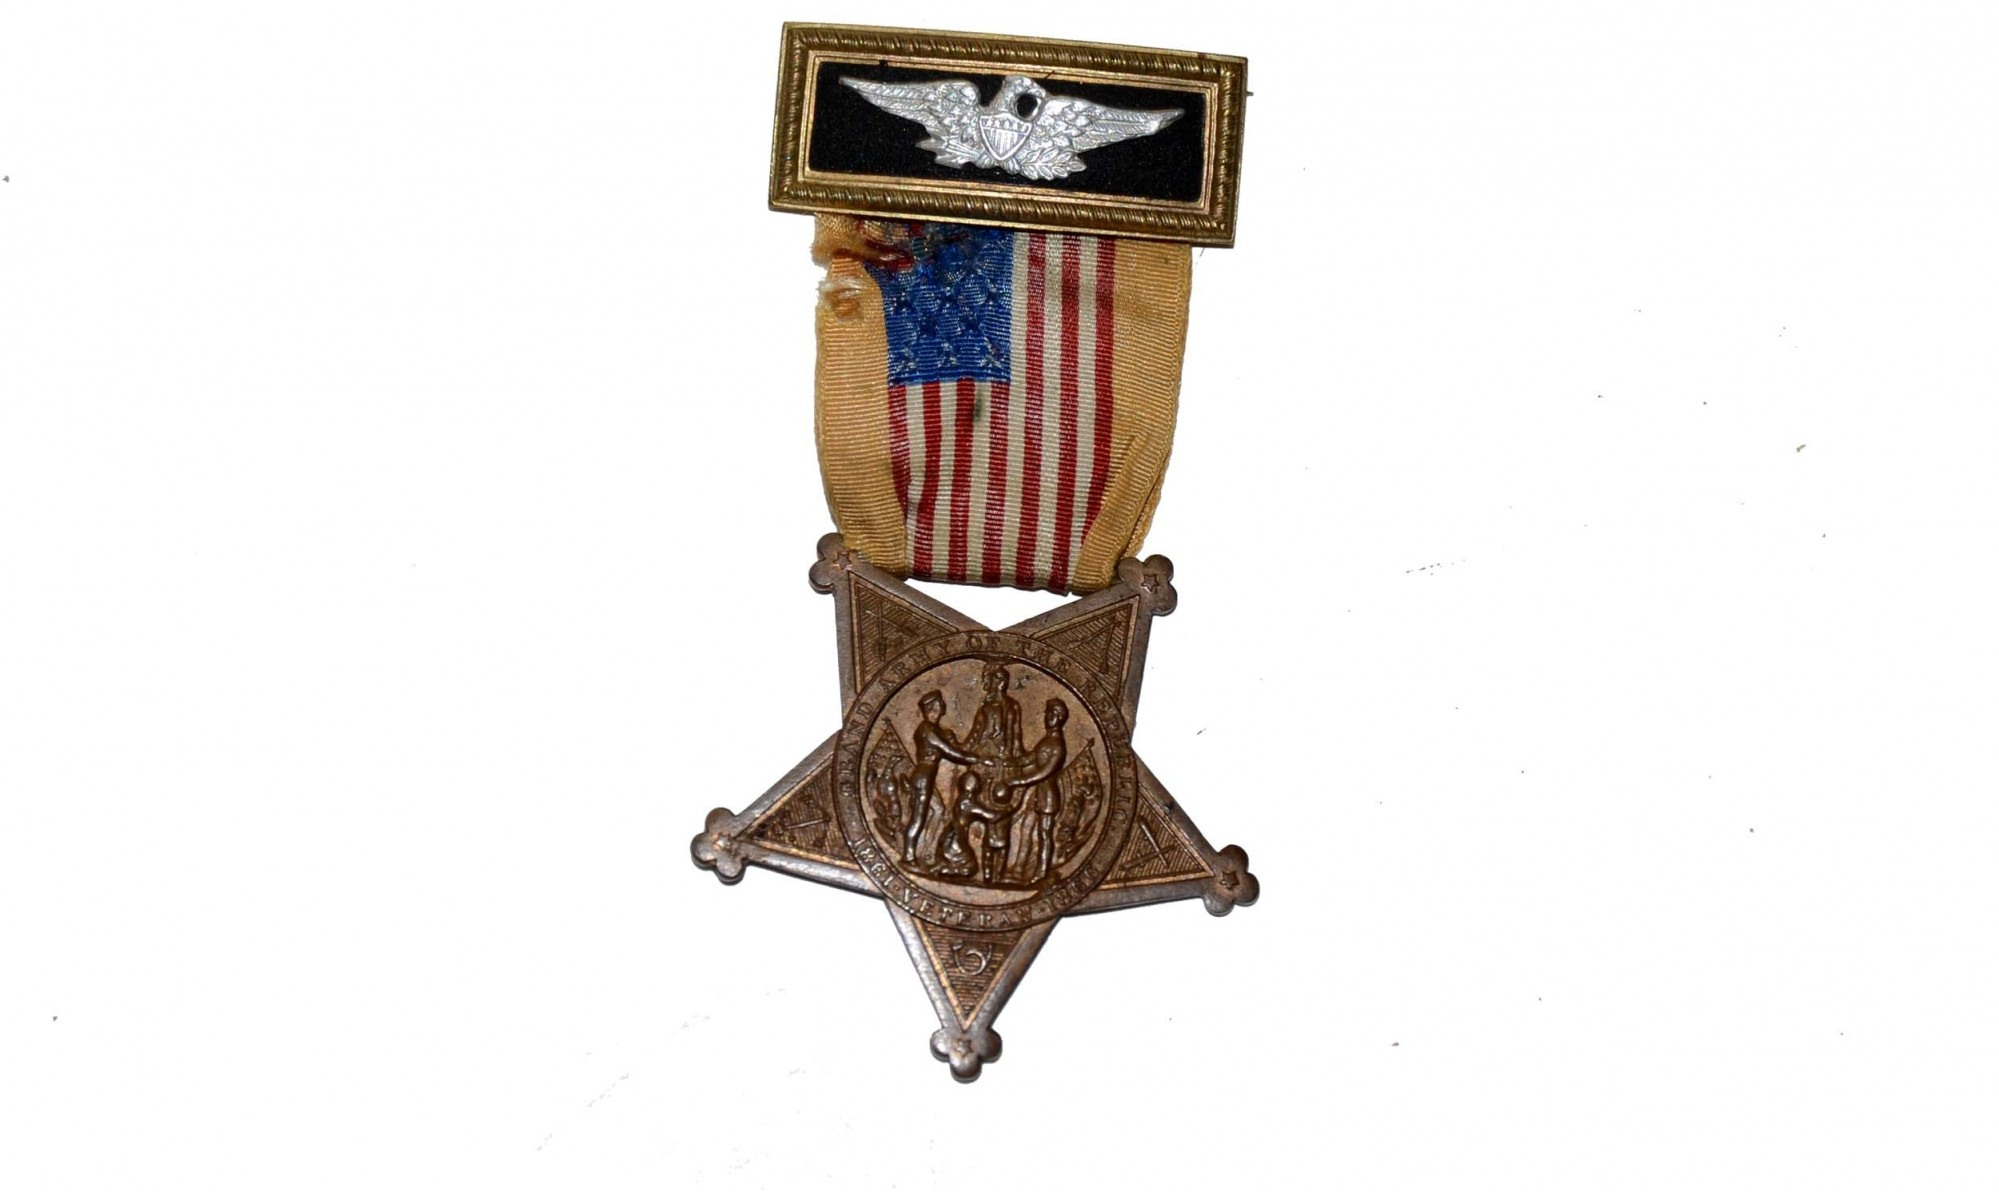 G.A.R. OFFICER'S BADGE